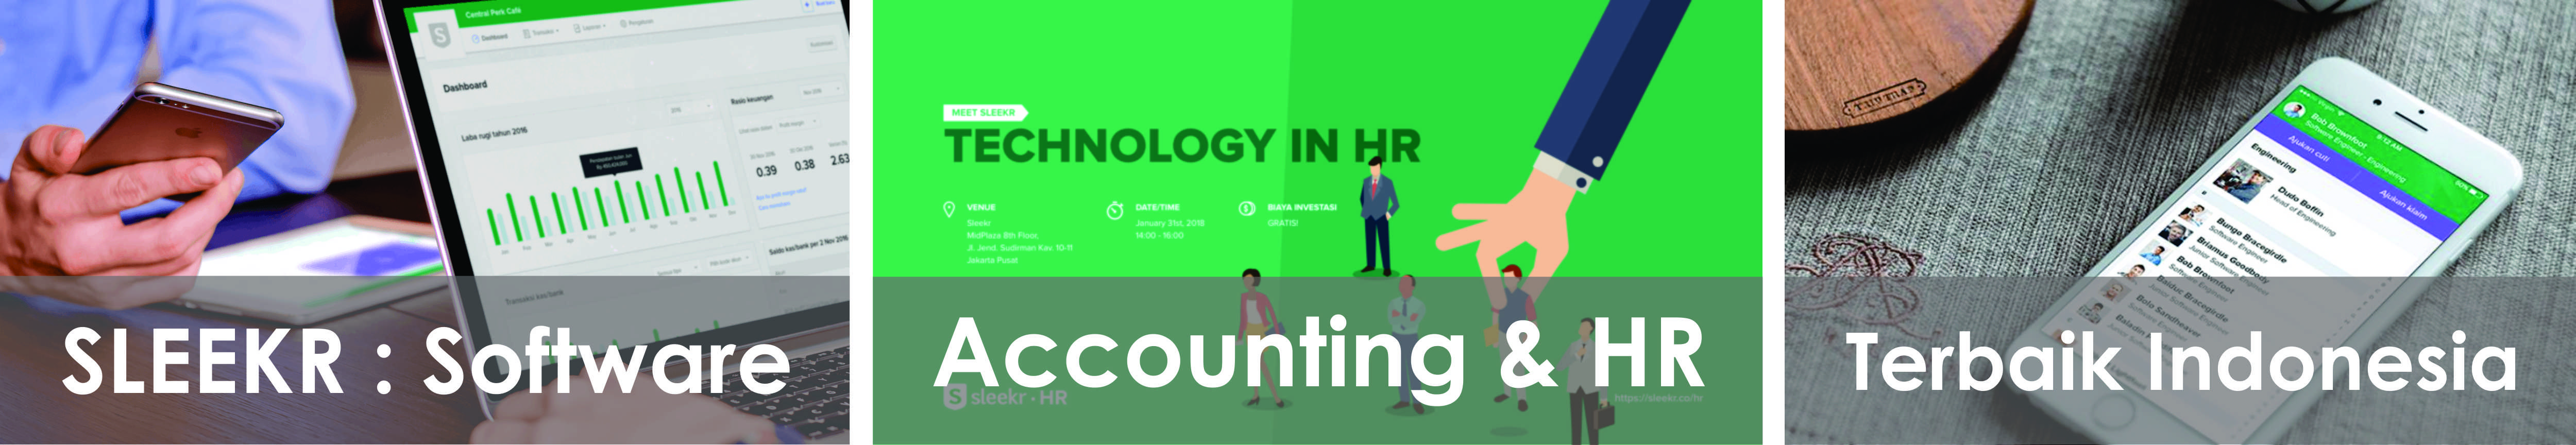 SLEEKR ACCOUNTING AND HR